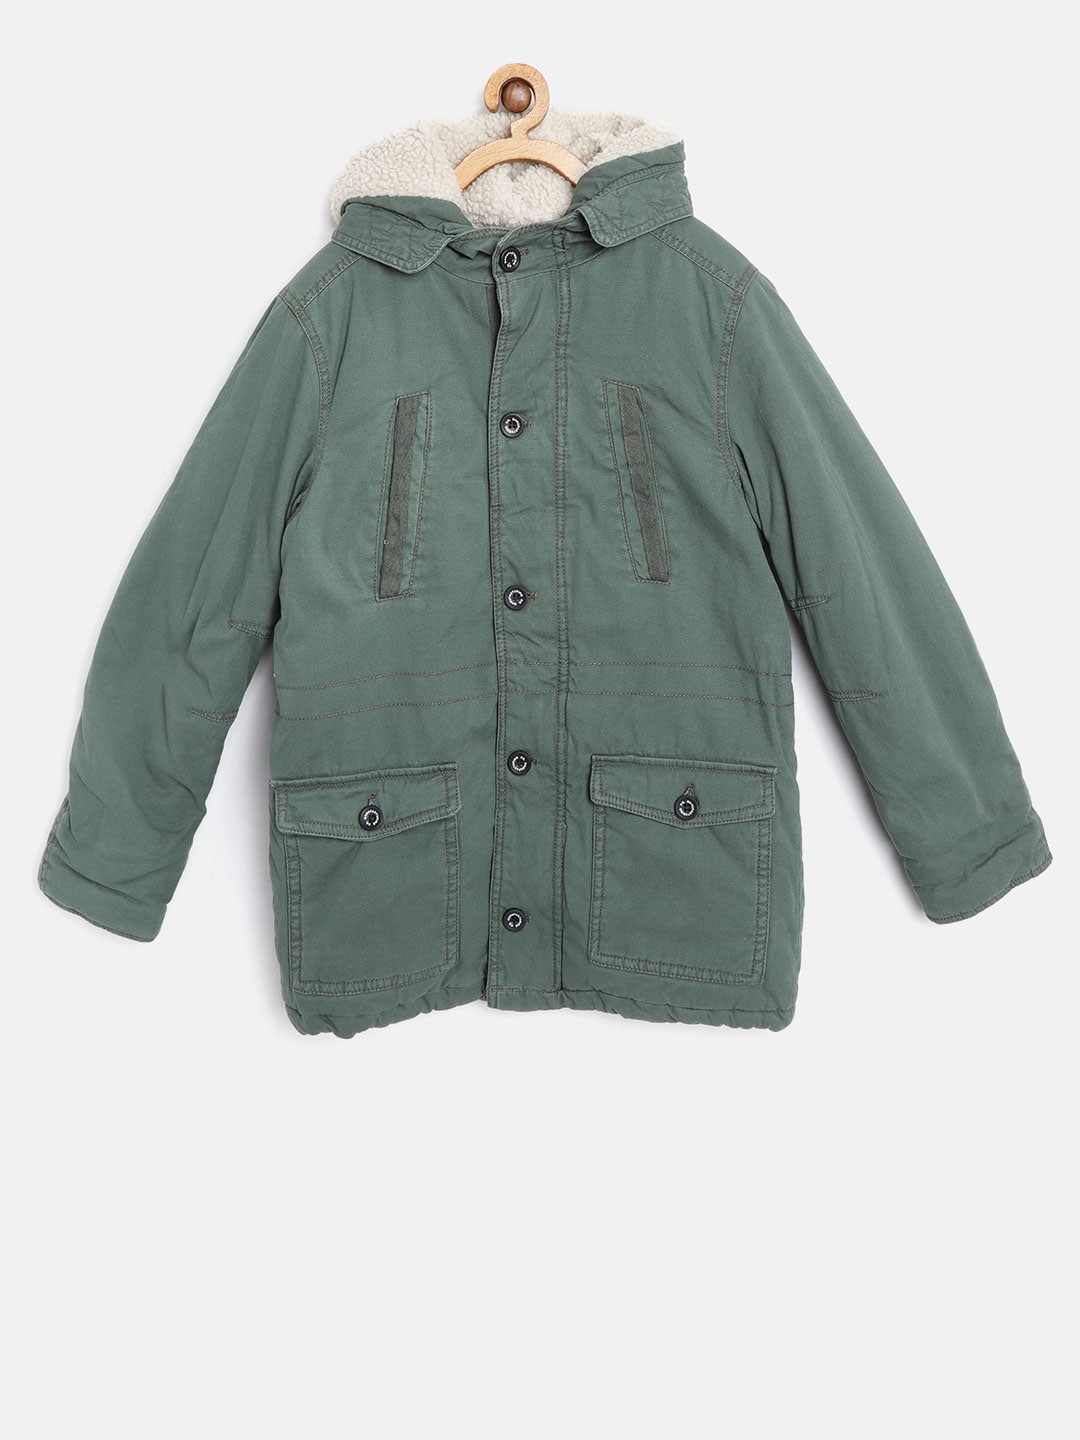 6f680f3712e0 Boys Jackets- Buy Jackets for Boys online in India